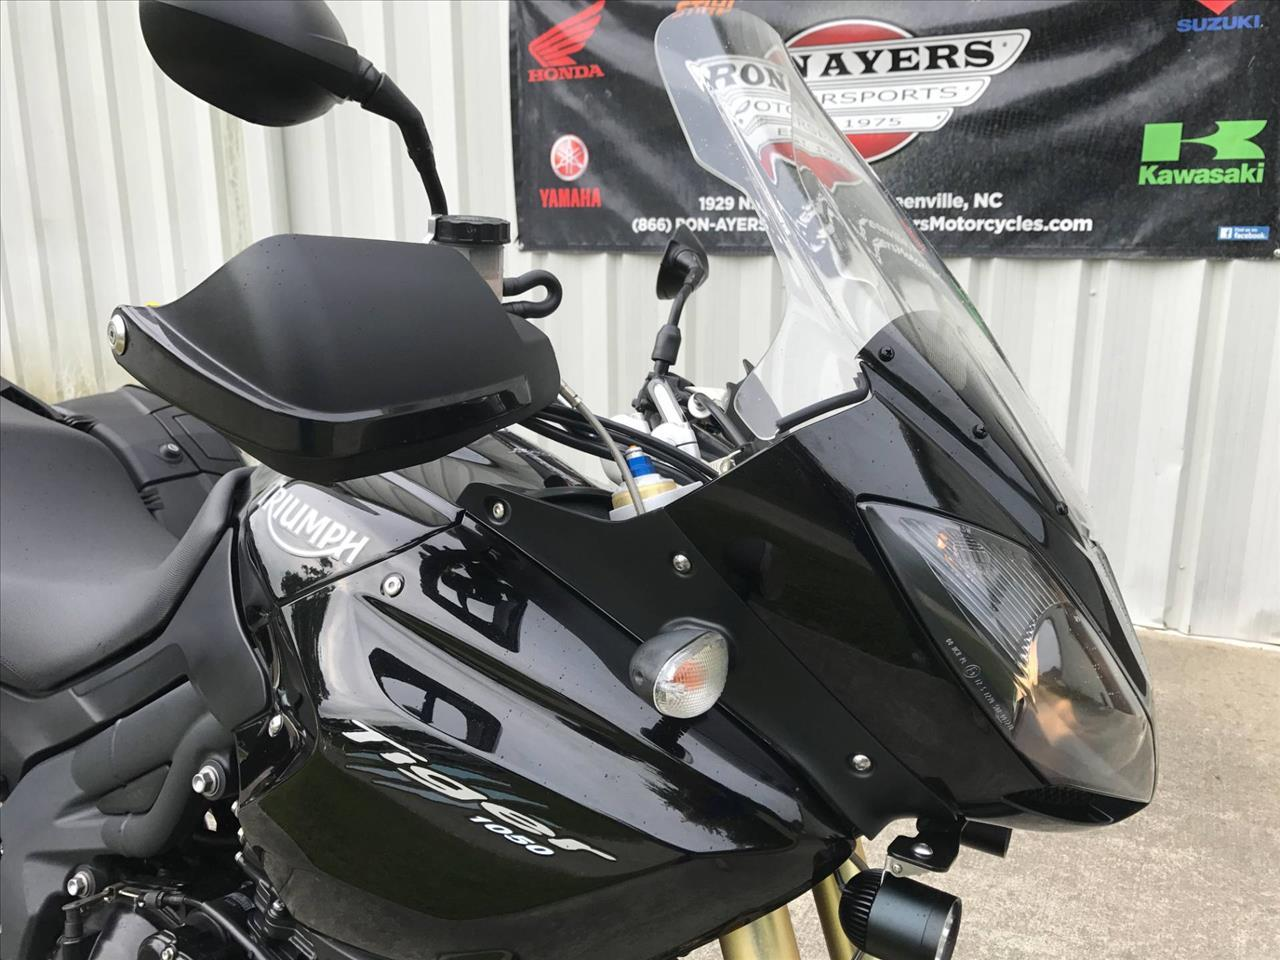 2010 Triumph Tiger 1050 for sale at Vehicle Network, LLC - Ron Ayers Motorsports in Greenville NC